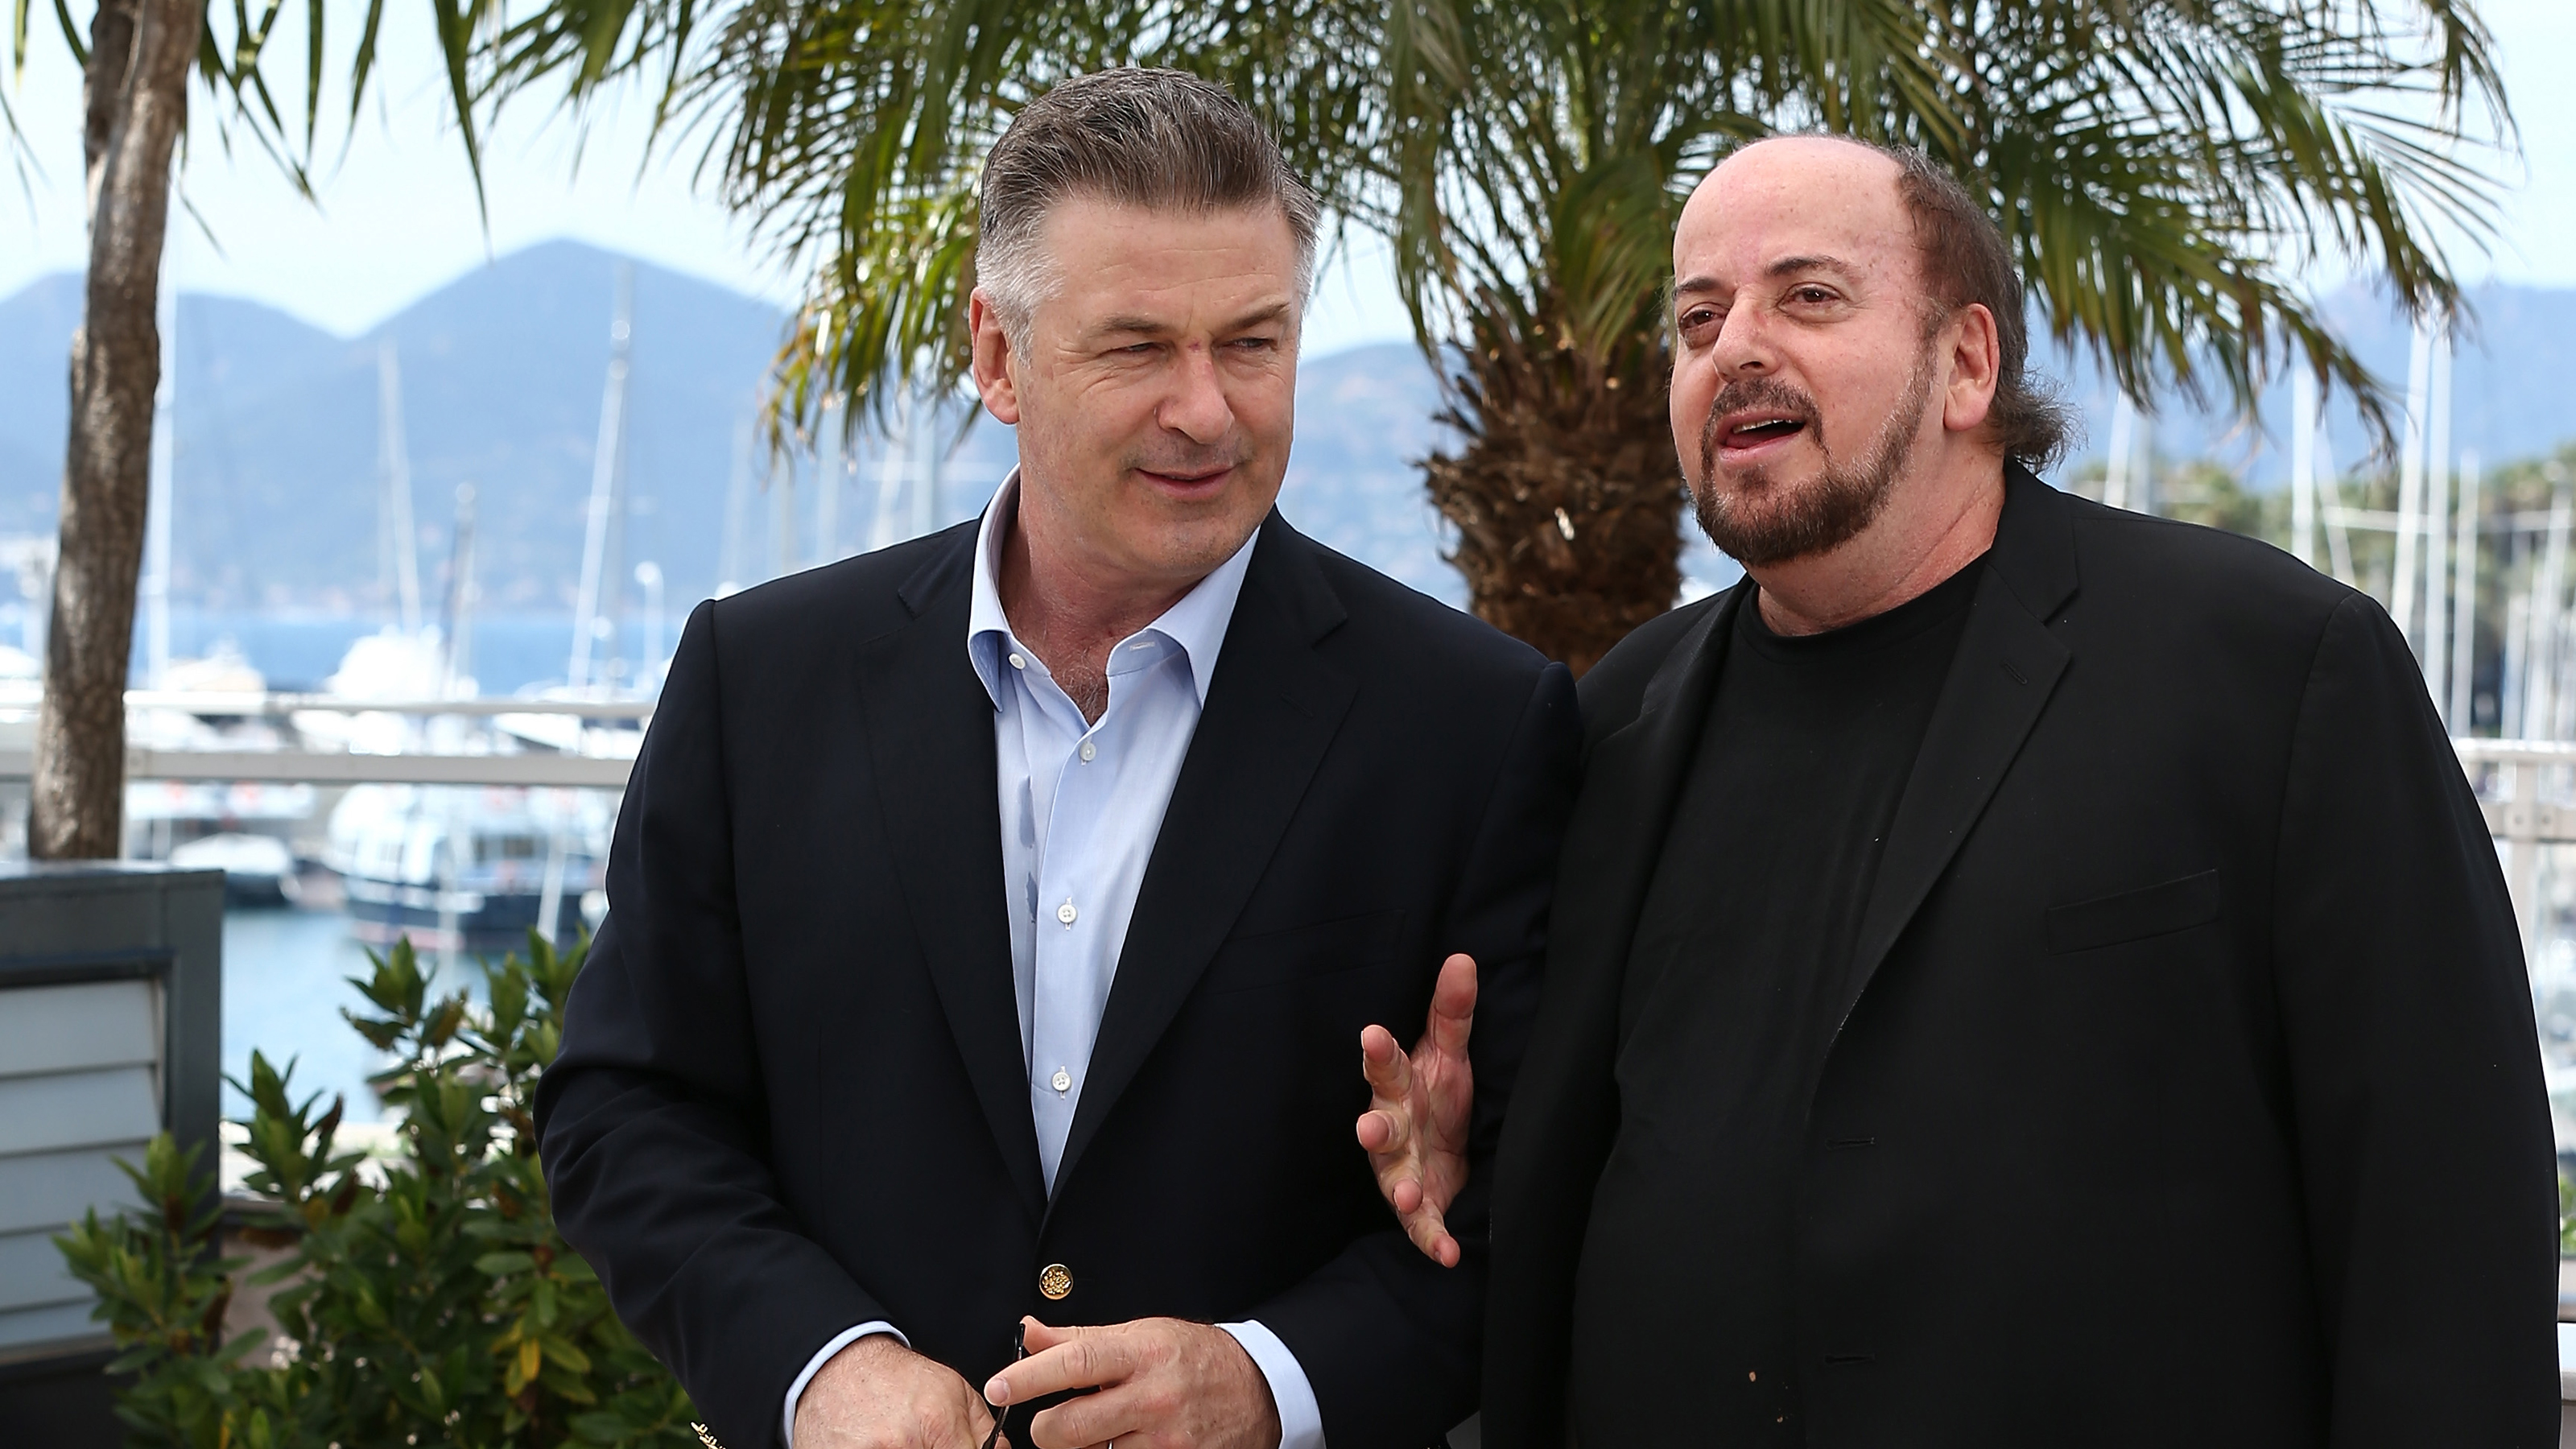 Actor Alec Baldwin (L) and director James Toback attend the 'Seduced And Abandoned' photocall during The 66th Annual Cannes Film Festival on May 21, 2013 in Cannes, France. (Andreas Rentz/Getty Images)